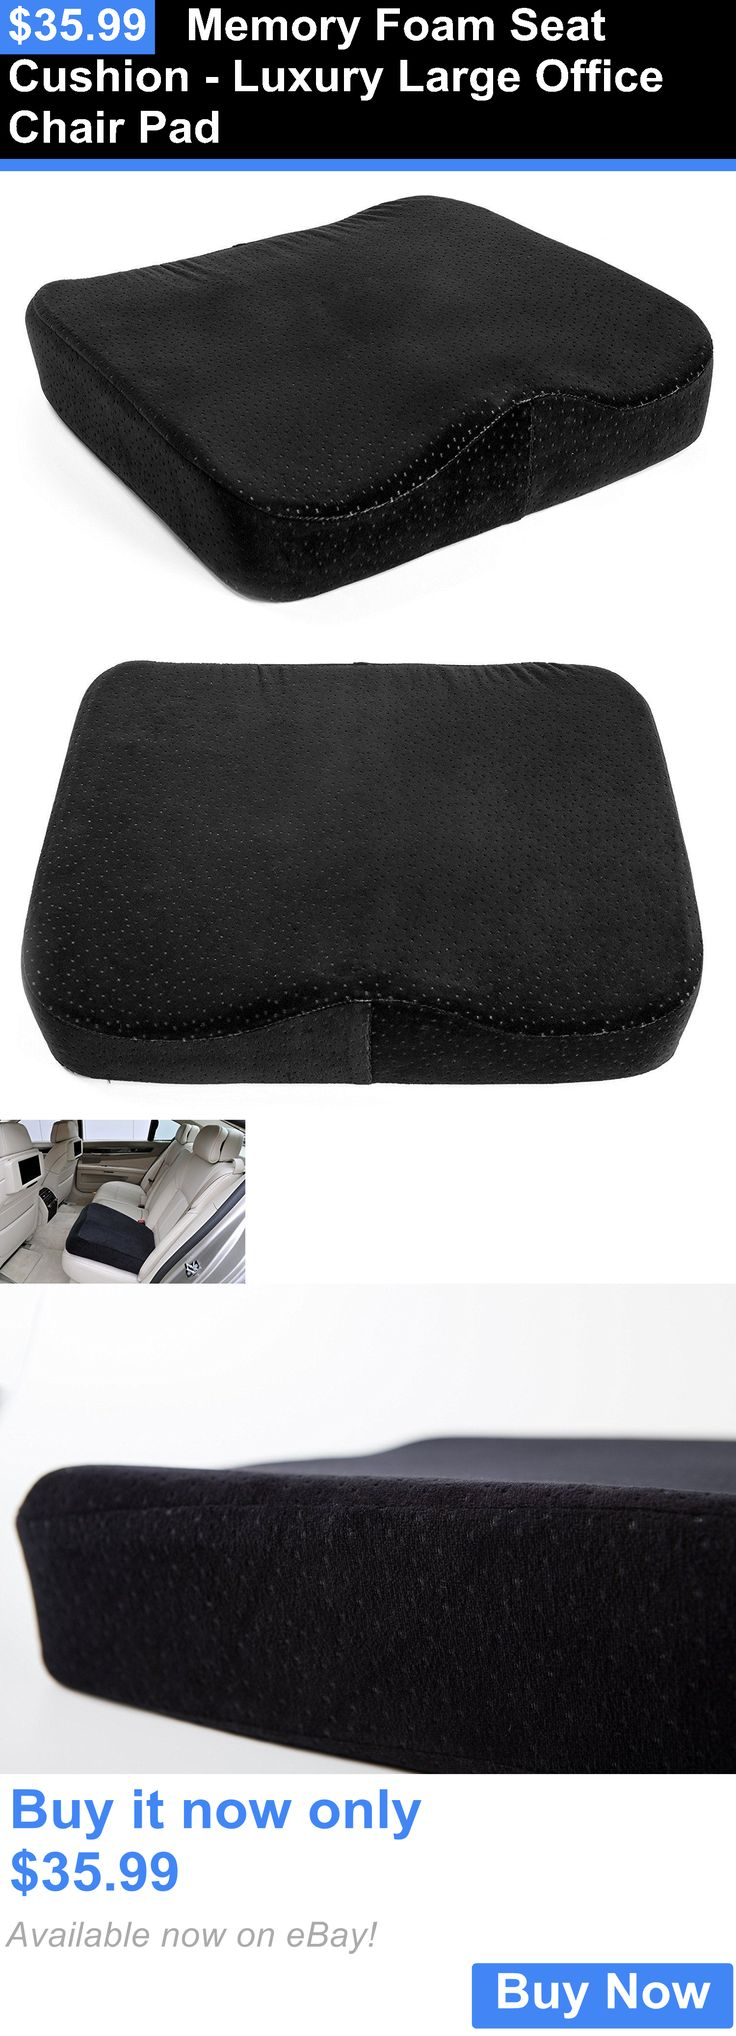 Seat and Posture Cushions: Memory Foam Seat Cushion - Luxury Large Office Chair Pad BUY IT NOW ONLY: $35.99